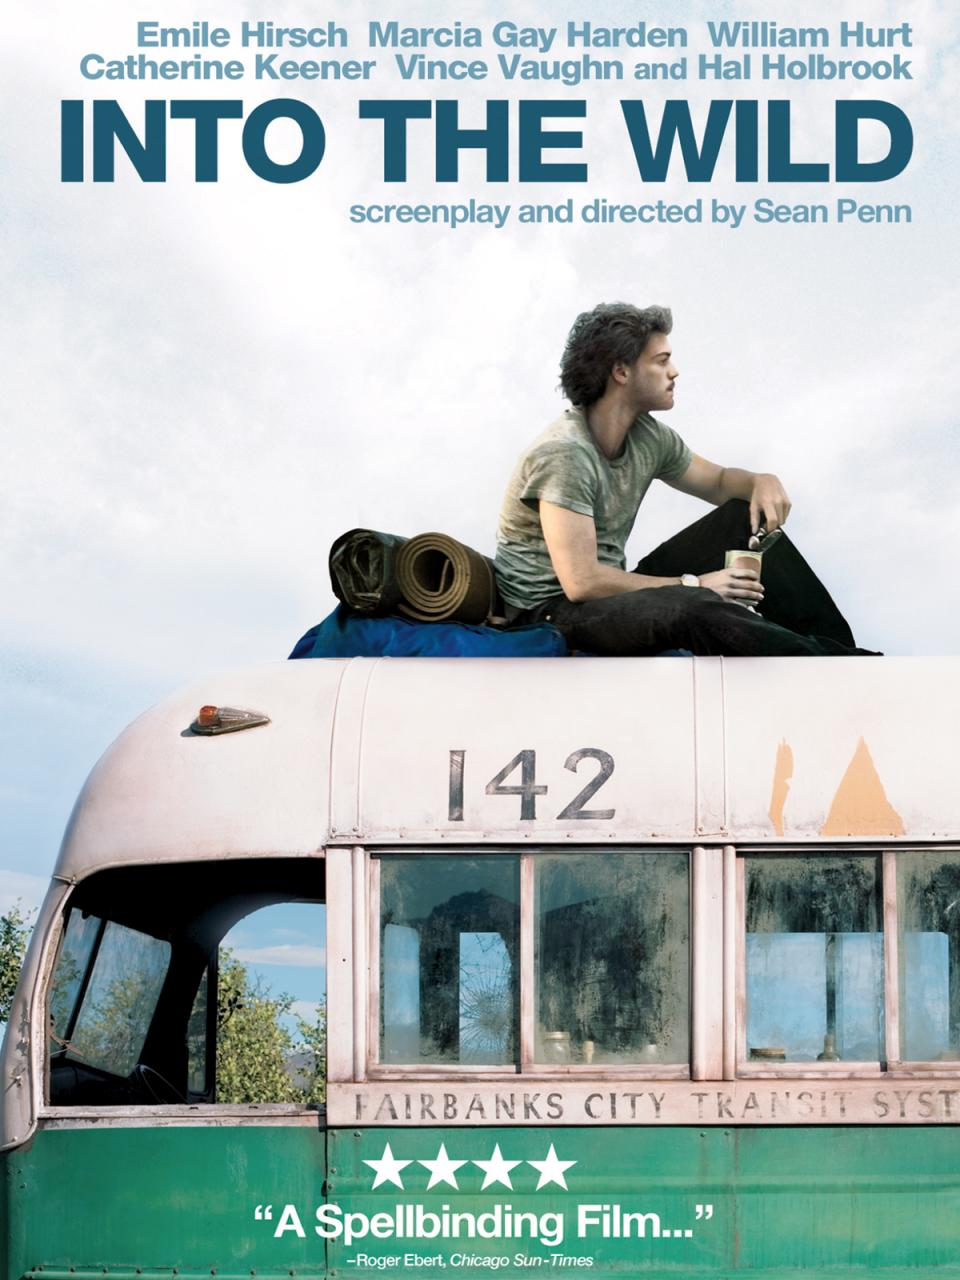 9 Interesting Facts You Should Know About The Movie Into The Wild